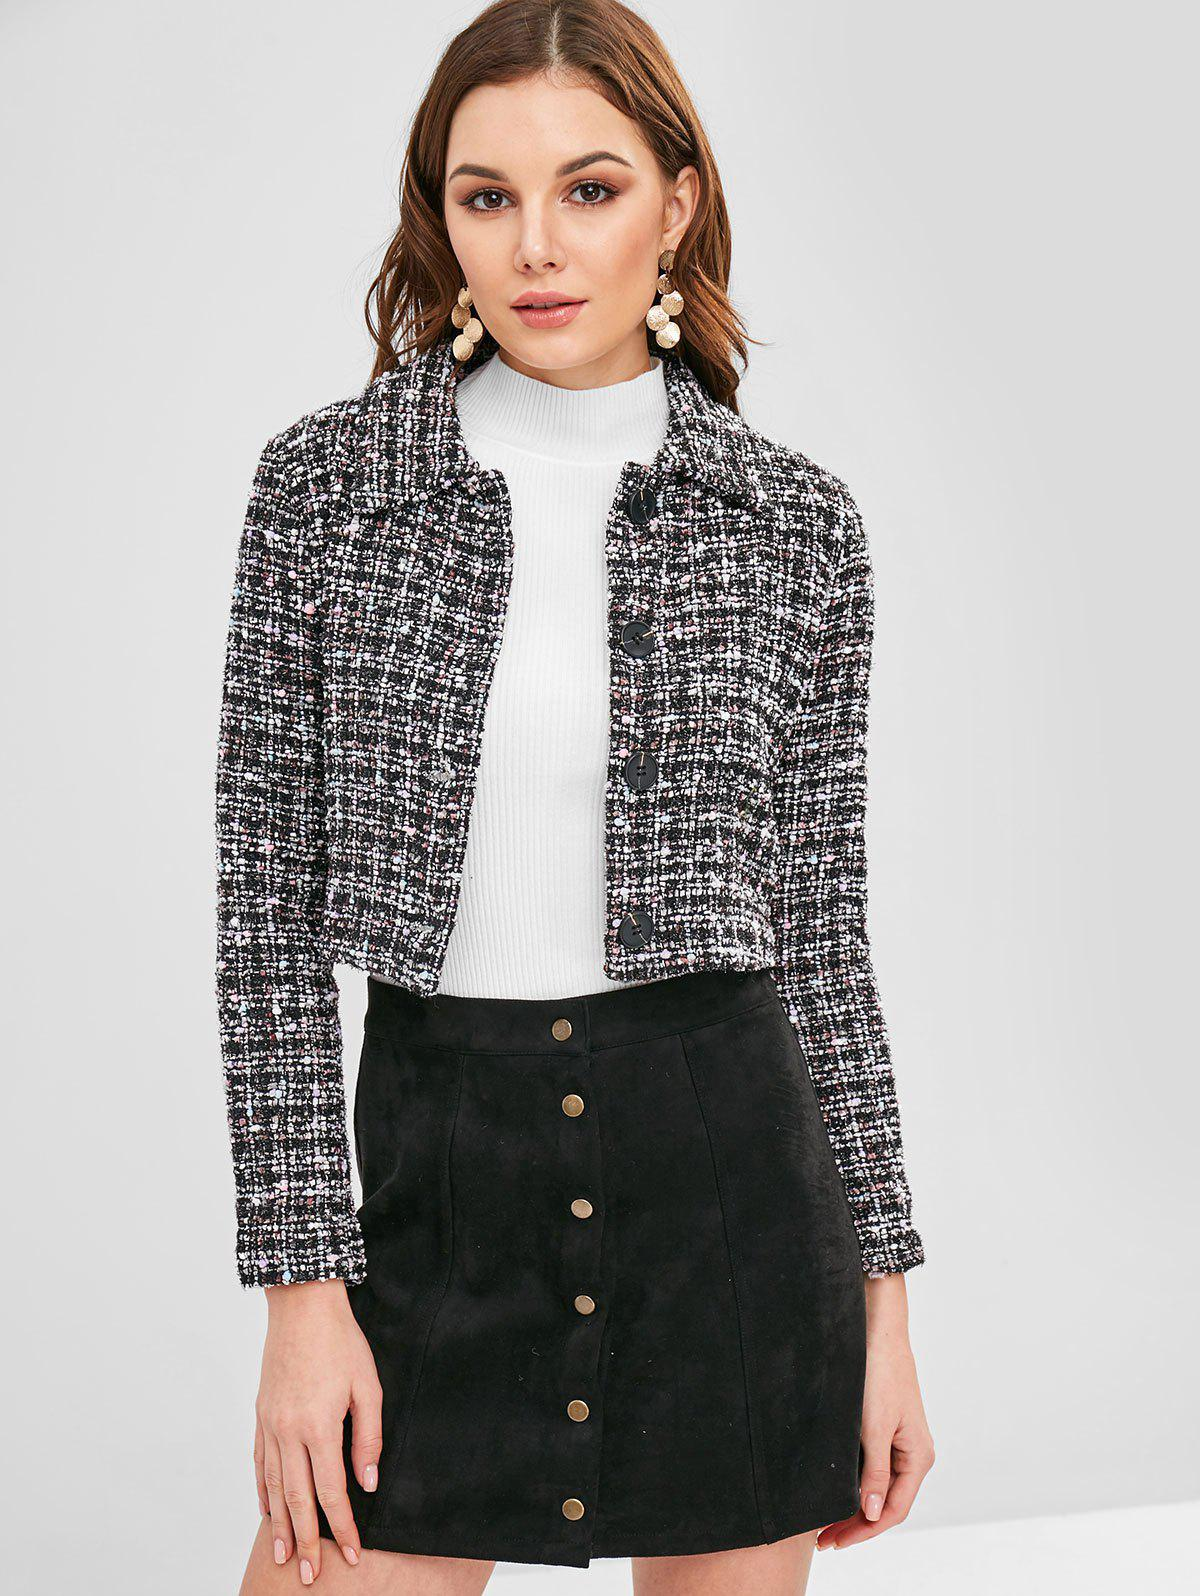 ZAFUL Cropped Button Up Tweed Jacket